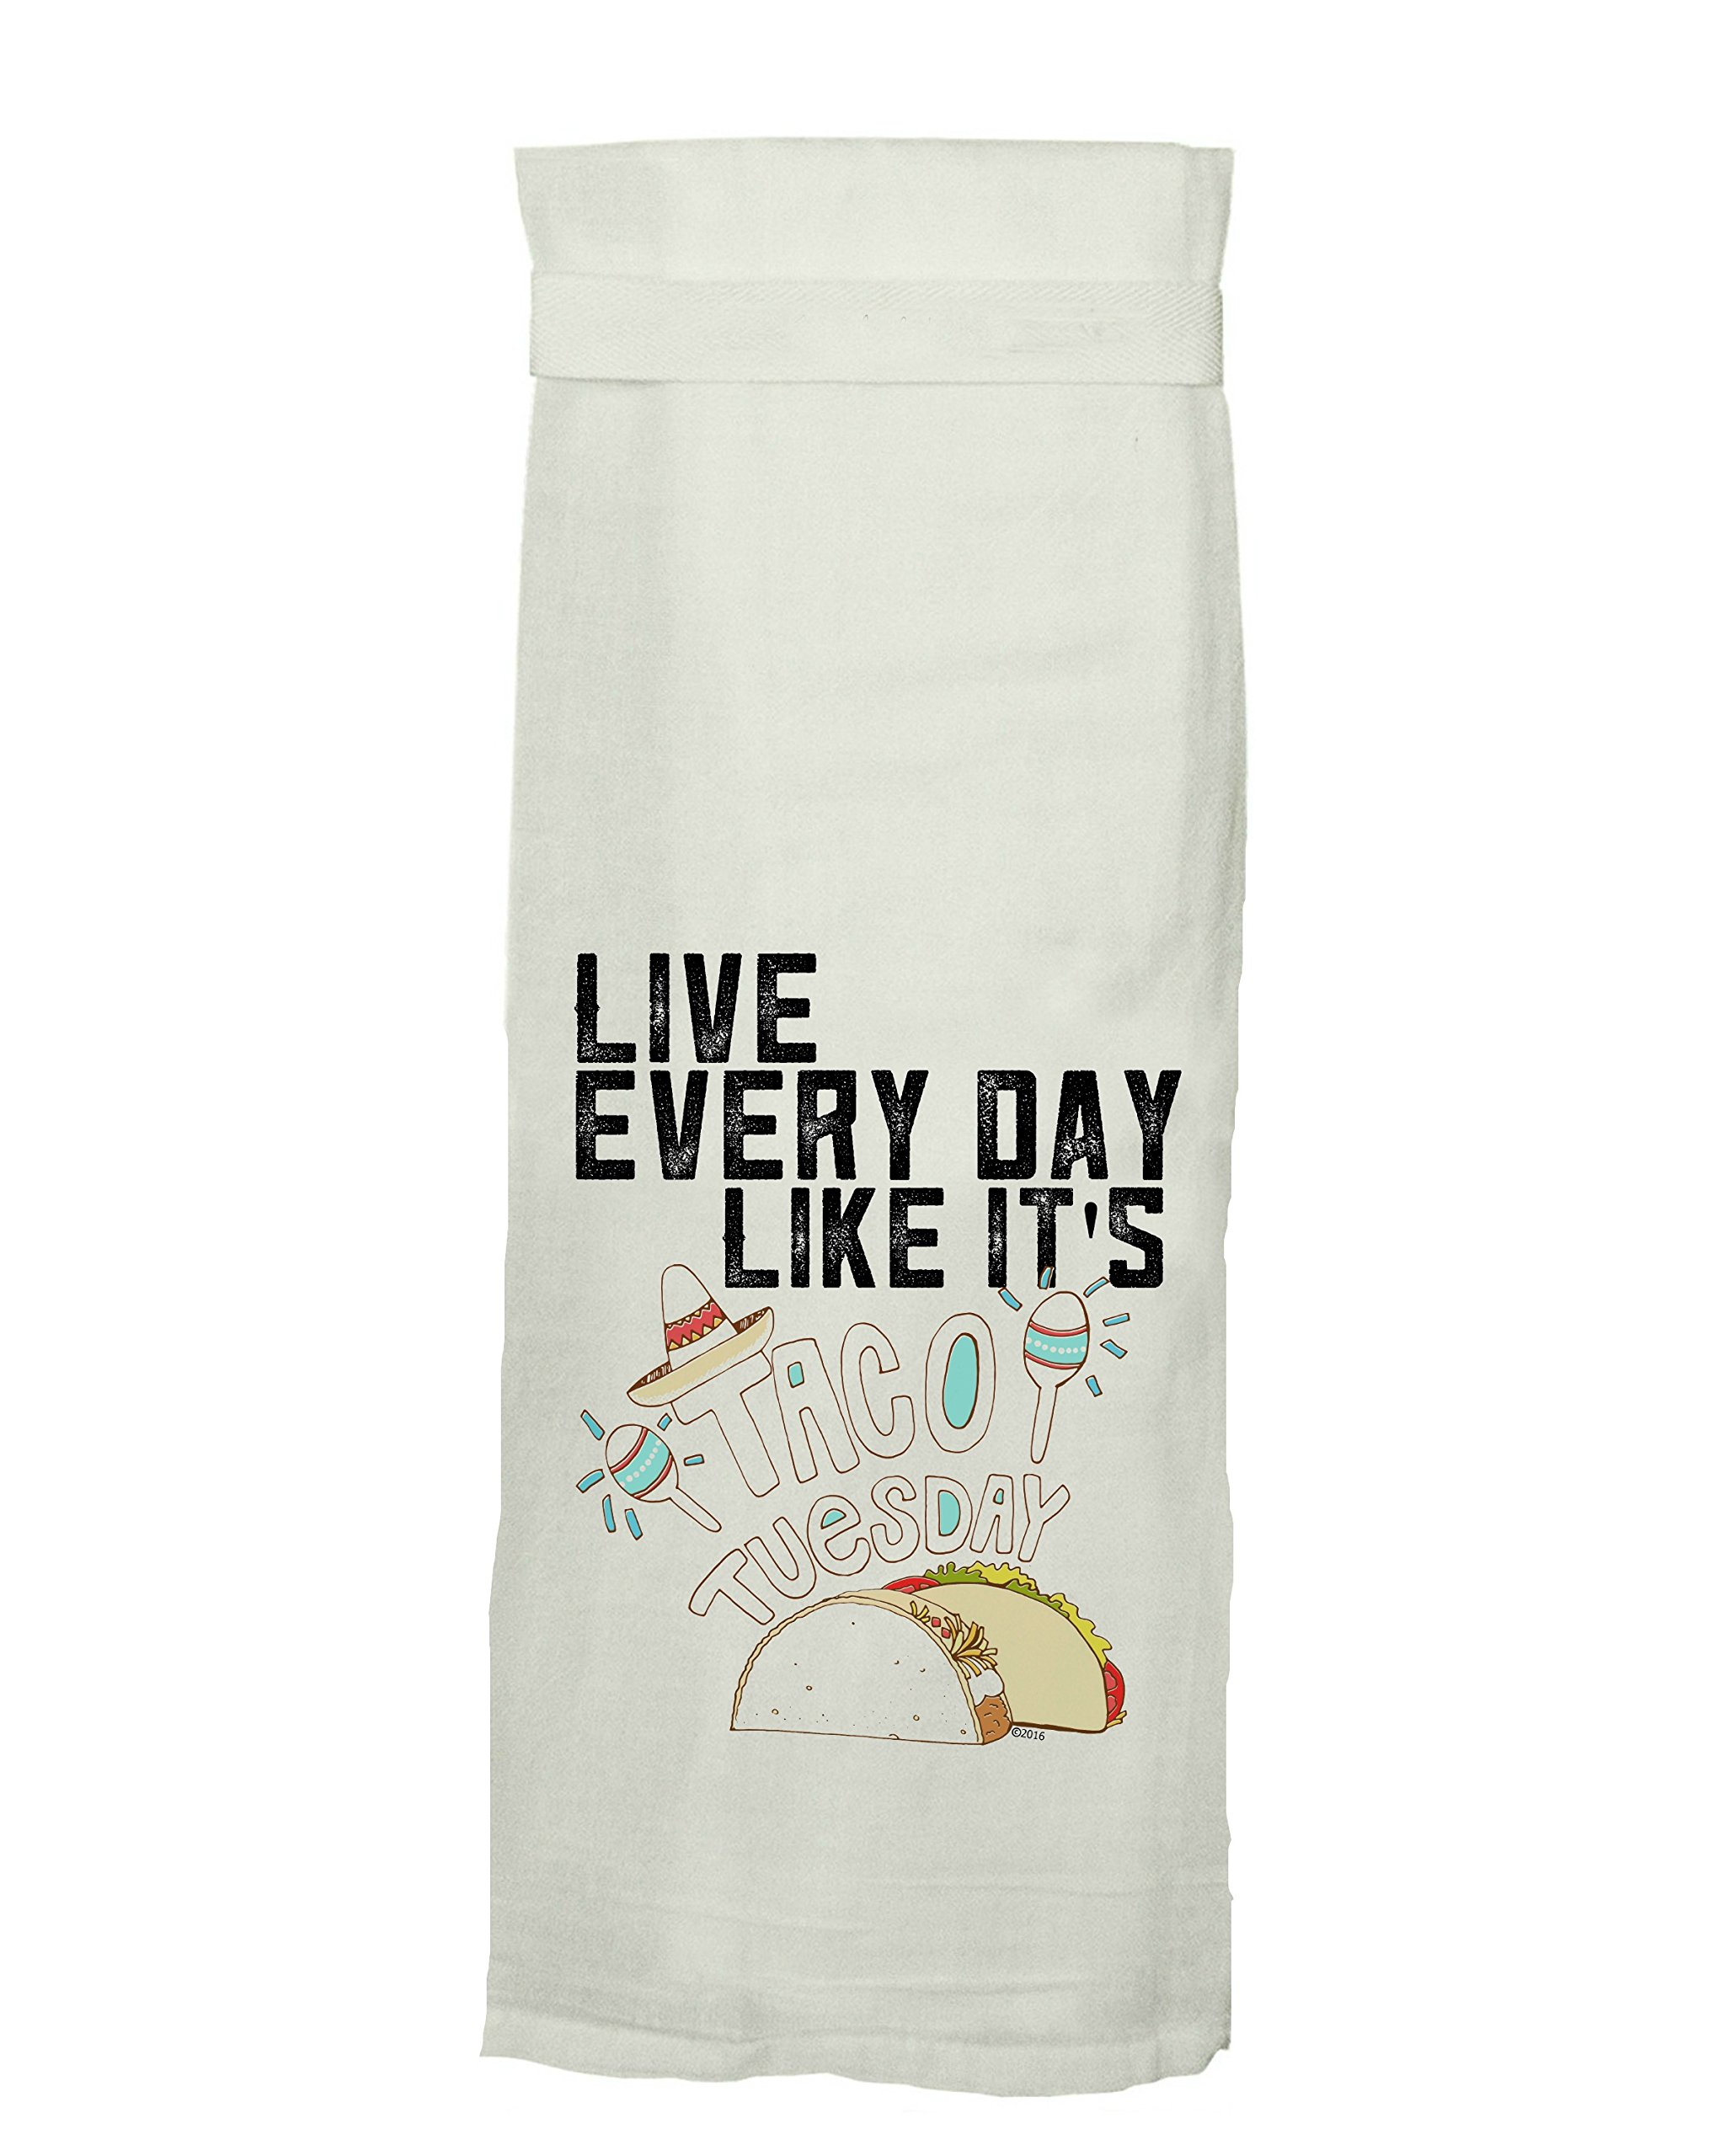 Twisted Wares Kitchen Towel, Funny With Hang Tight Design by LIVE EVERY DAY LIKE IT'S TACO TUESDAY Made With A Super Absorbent, Quick Dry, Lint Free 100% Cotton Flour Sack by Twisted Wares